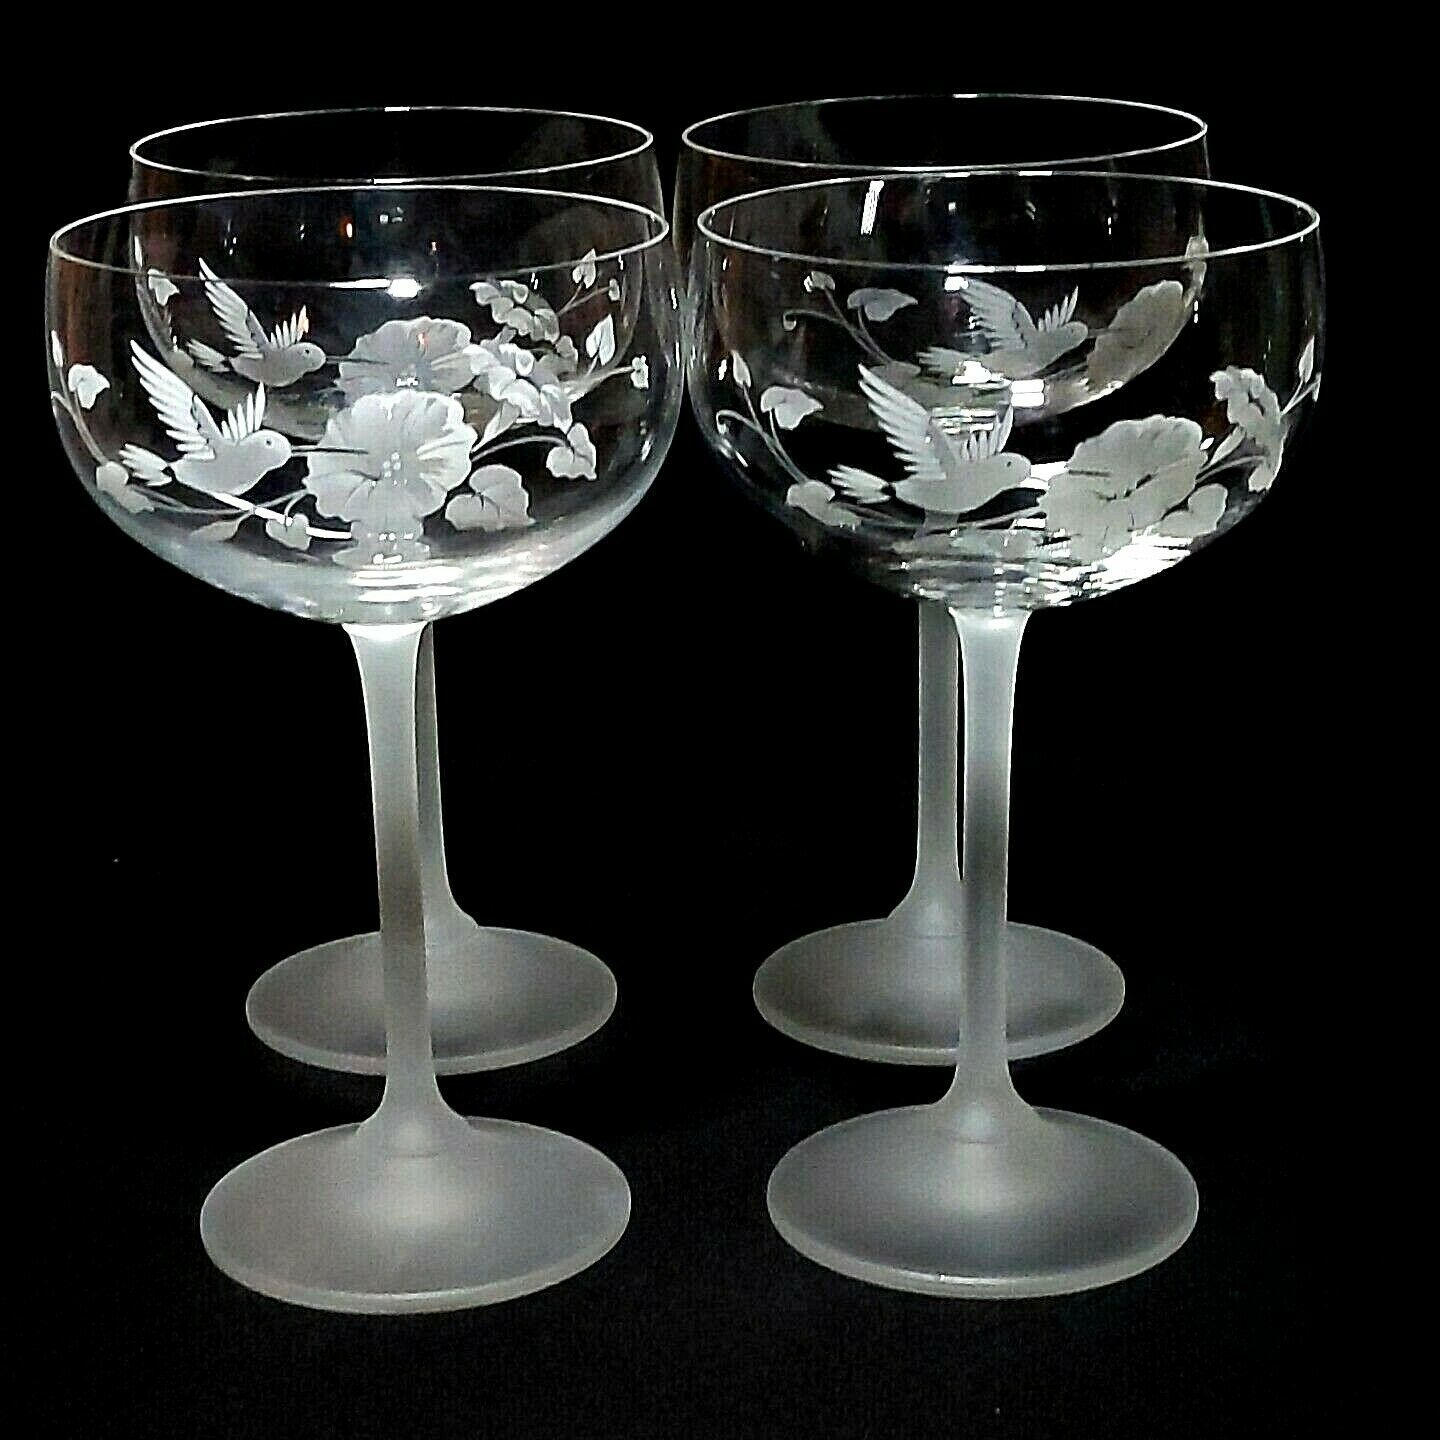 4 (Four) AVON HUMMINGBIRD Etched Crystal Champagne/ Tall Sherbet Glasses France